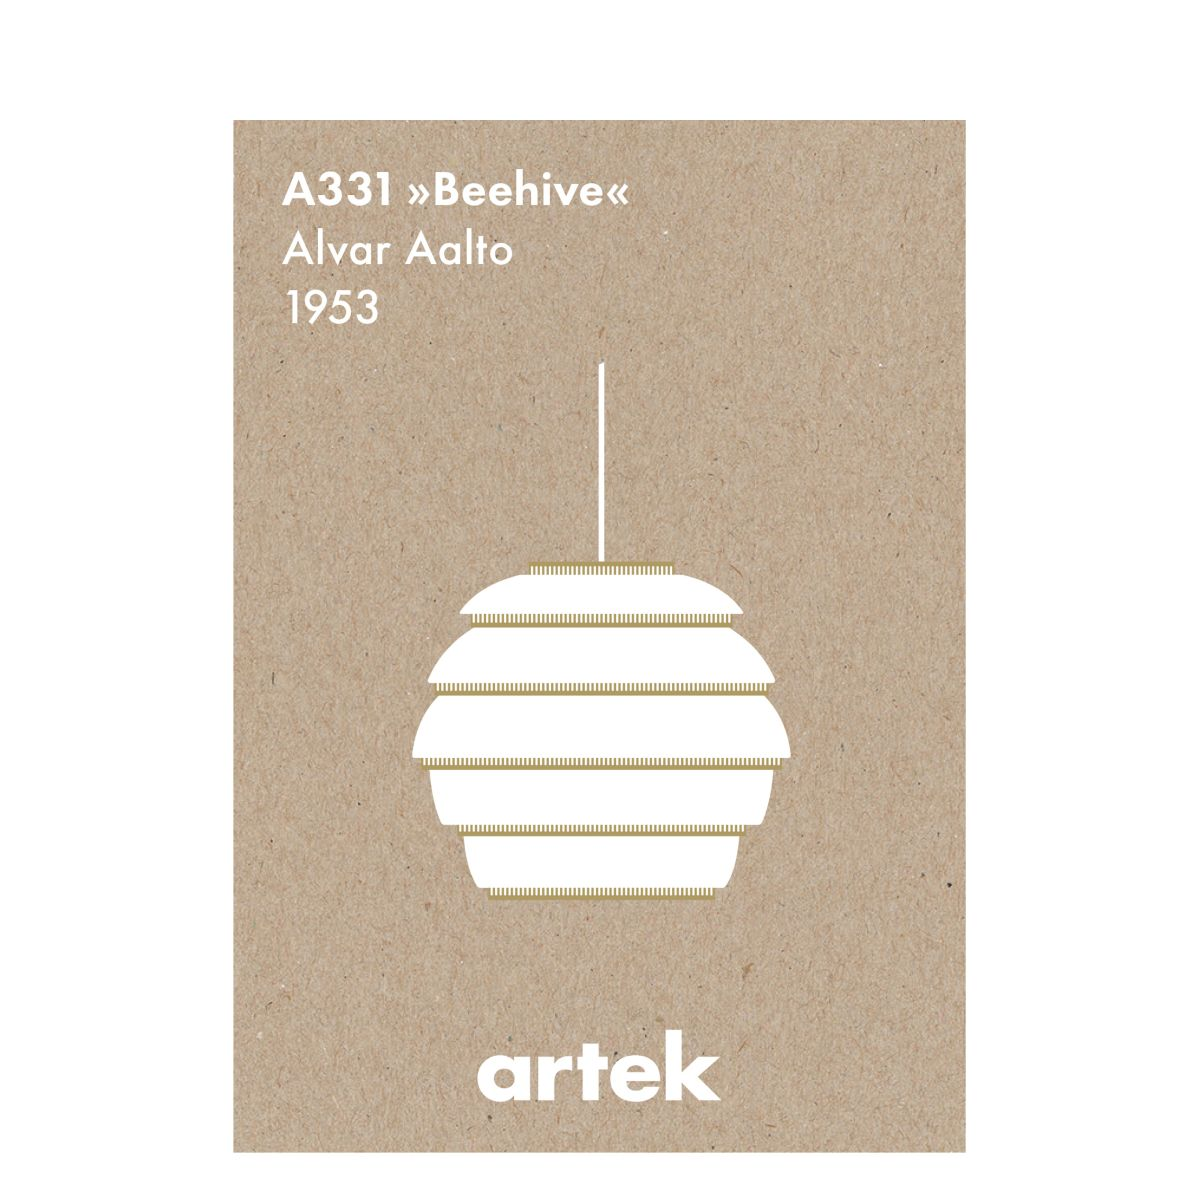 Artek-Icons-Greige-Pendant-Light-A331-Beehive-1843106_WEB